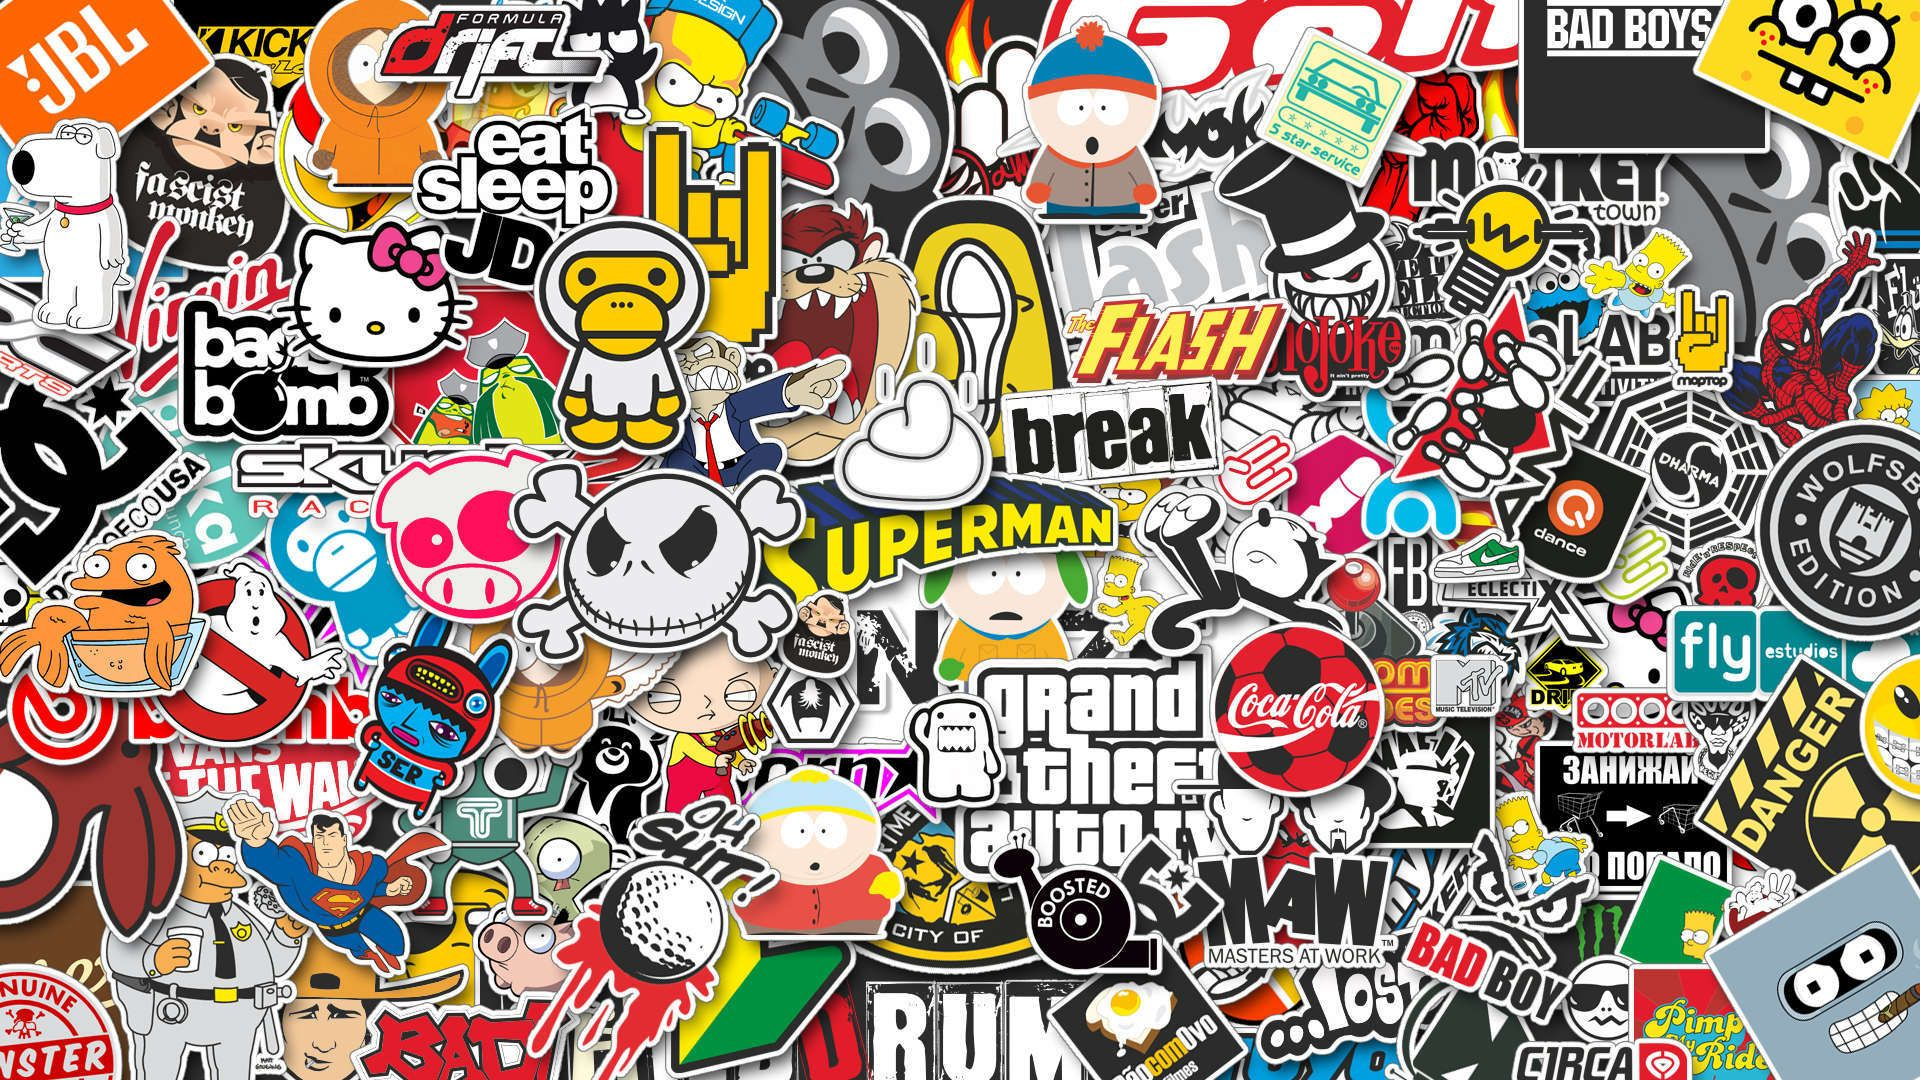 Stickers style jdm hd wallpaper 1080p